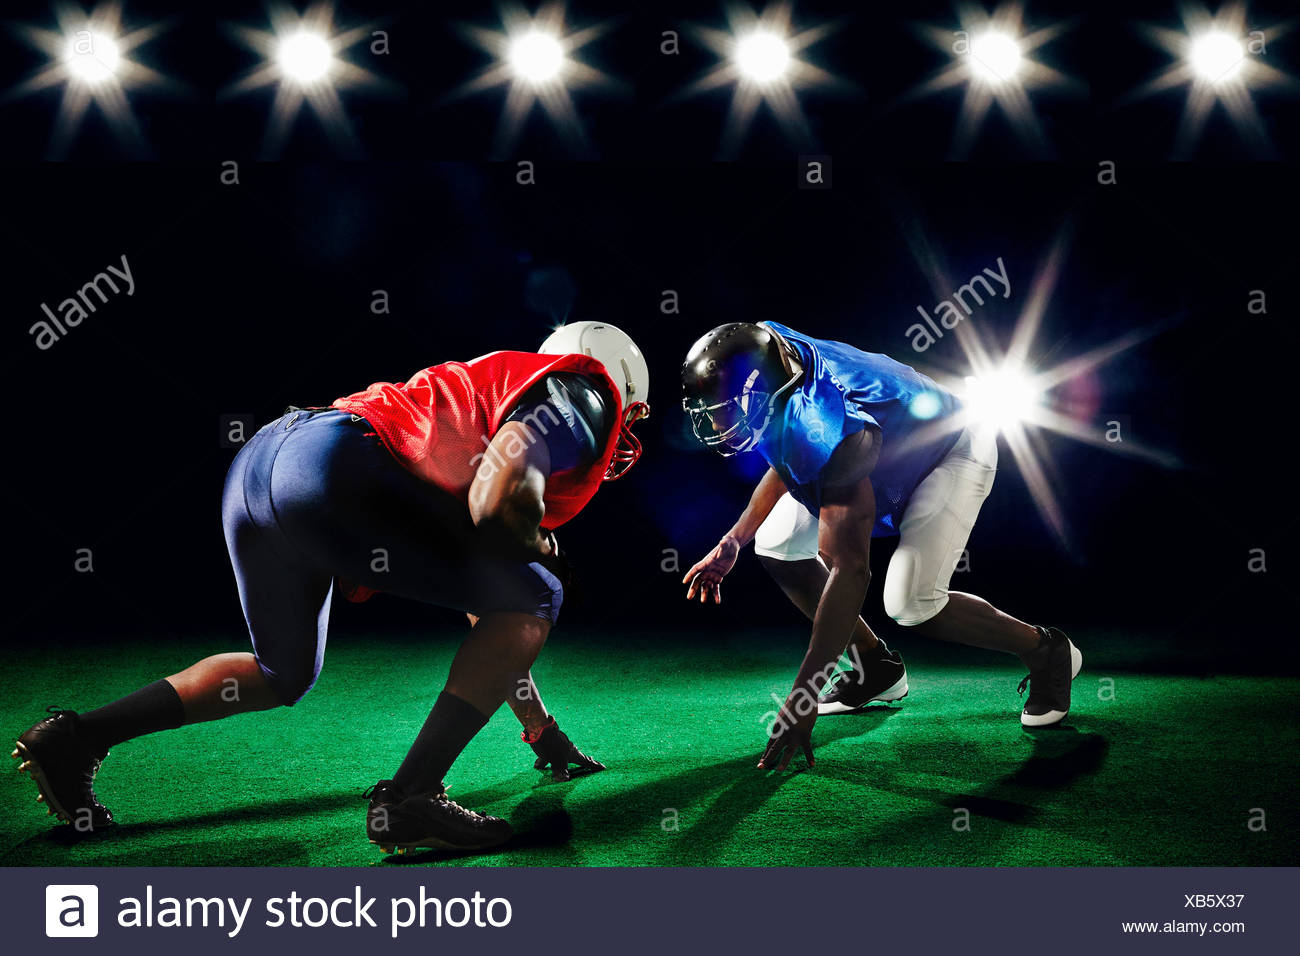 Two american footballers playing head to head - Stock Image